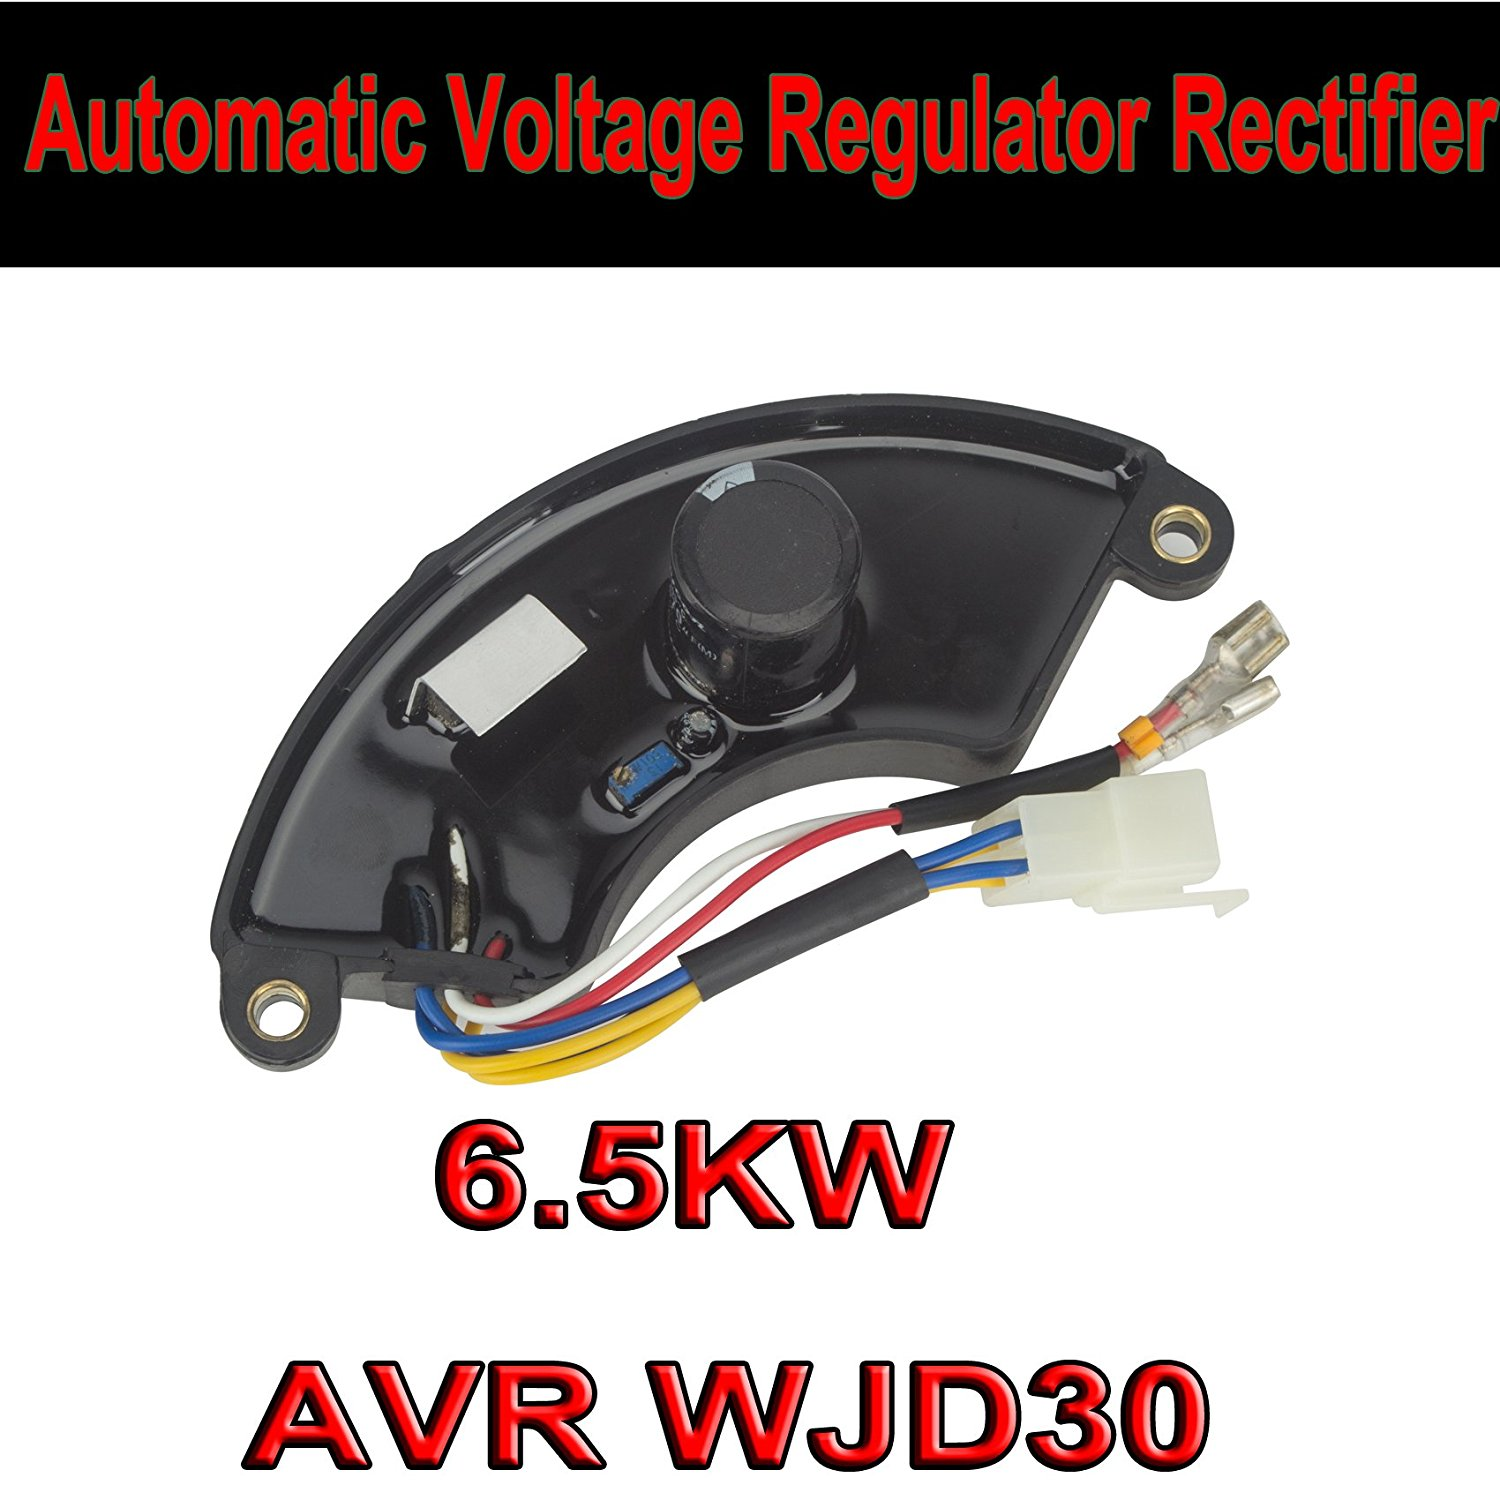 DODOING 6.5KW Generator Automatic Voltage Regulator Rectifier AVR For 5KW-7KW WJD30